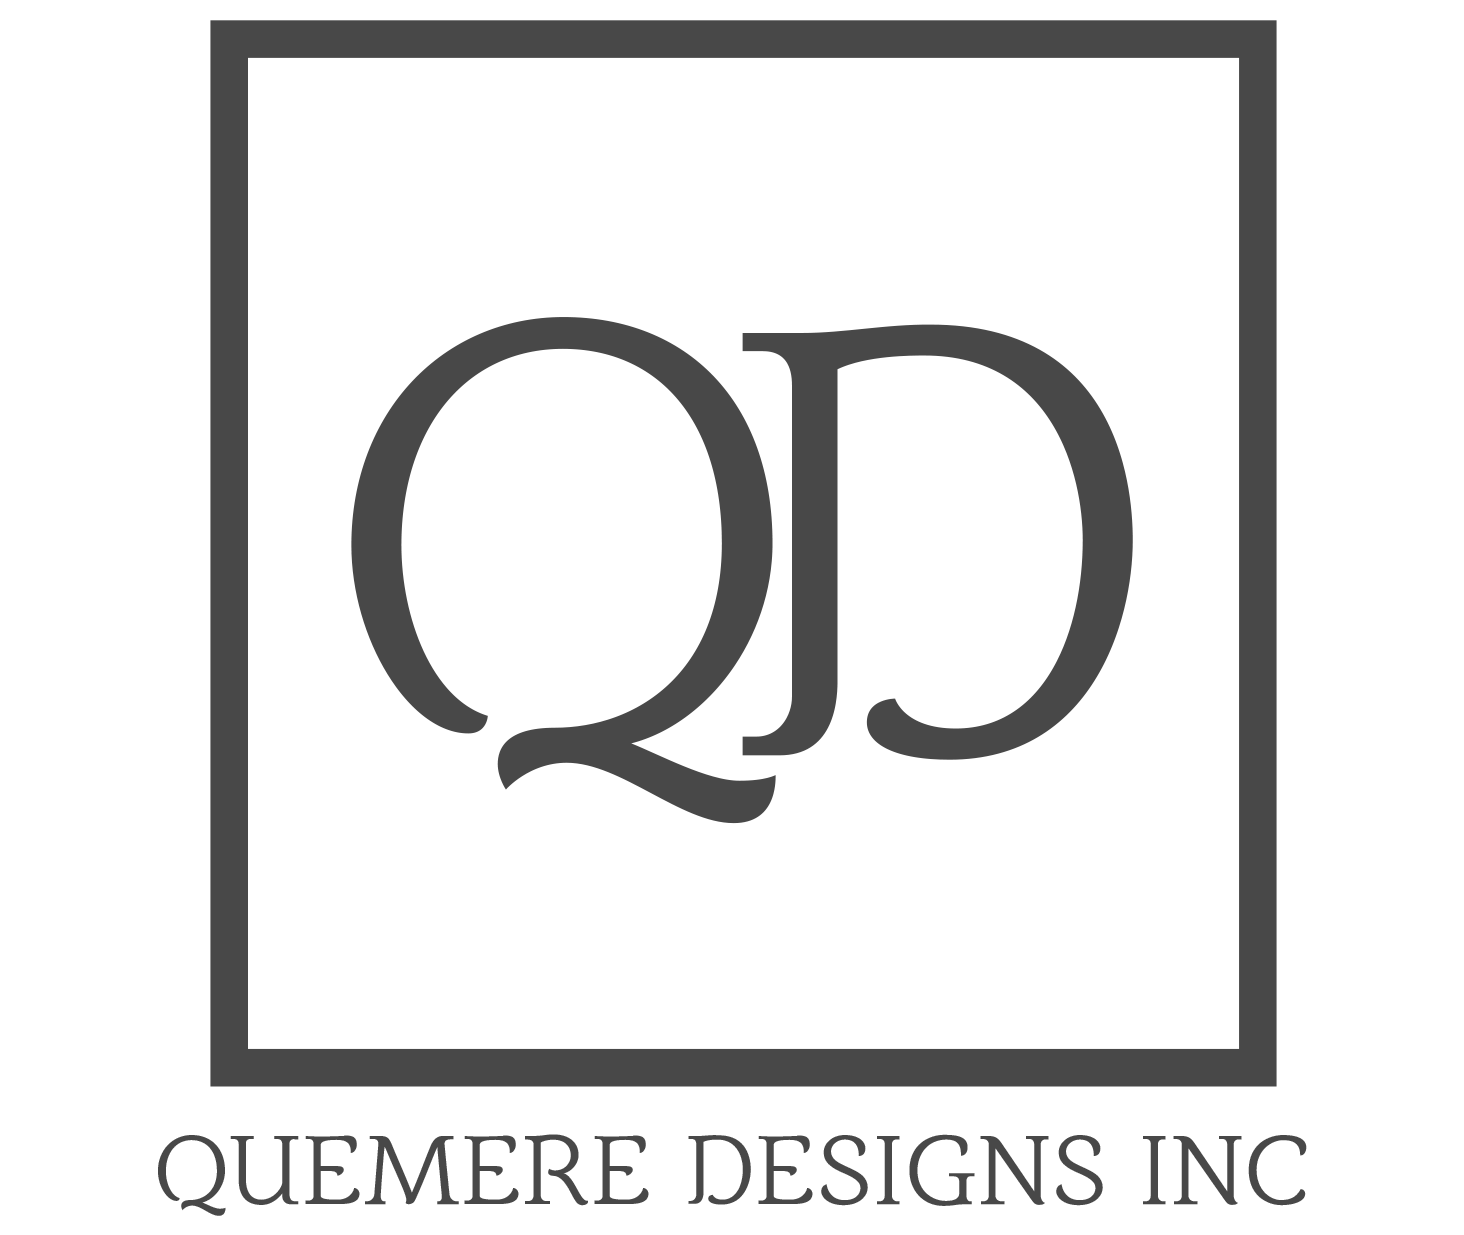 Quemere Designs Inc